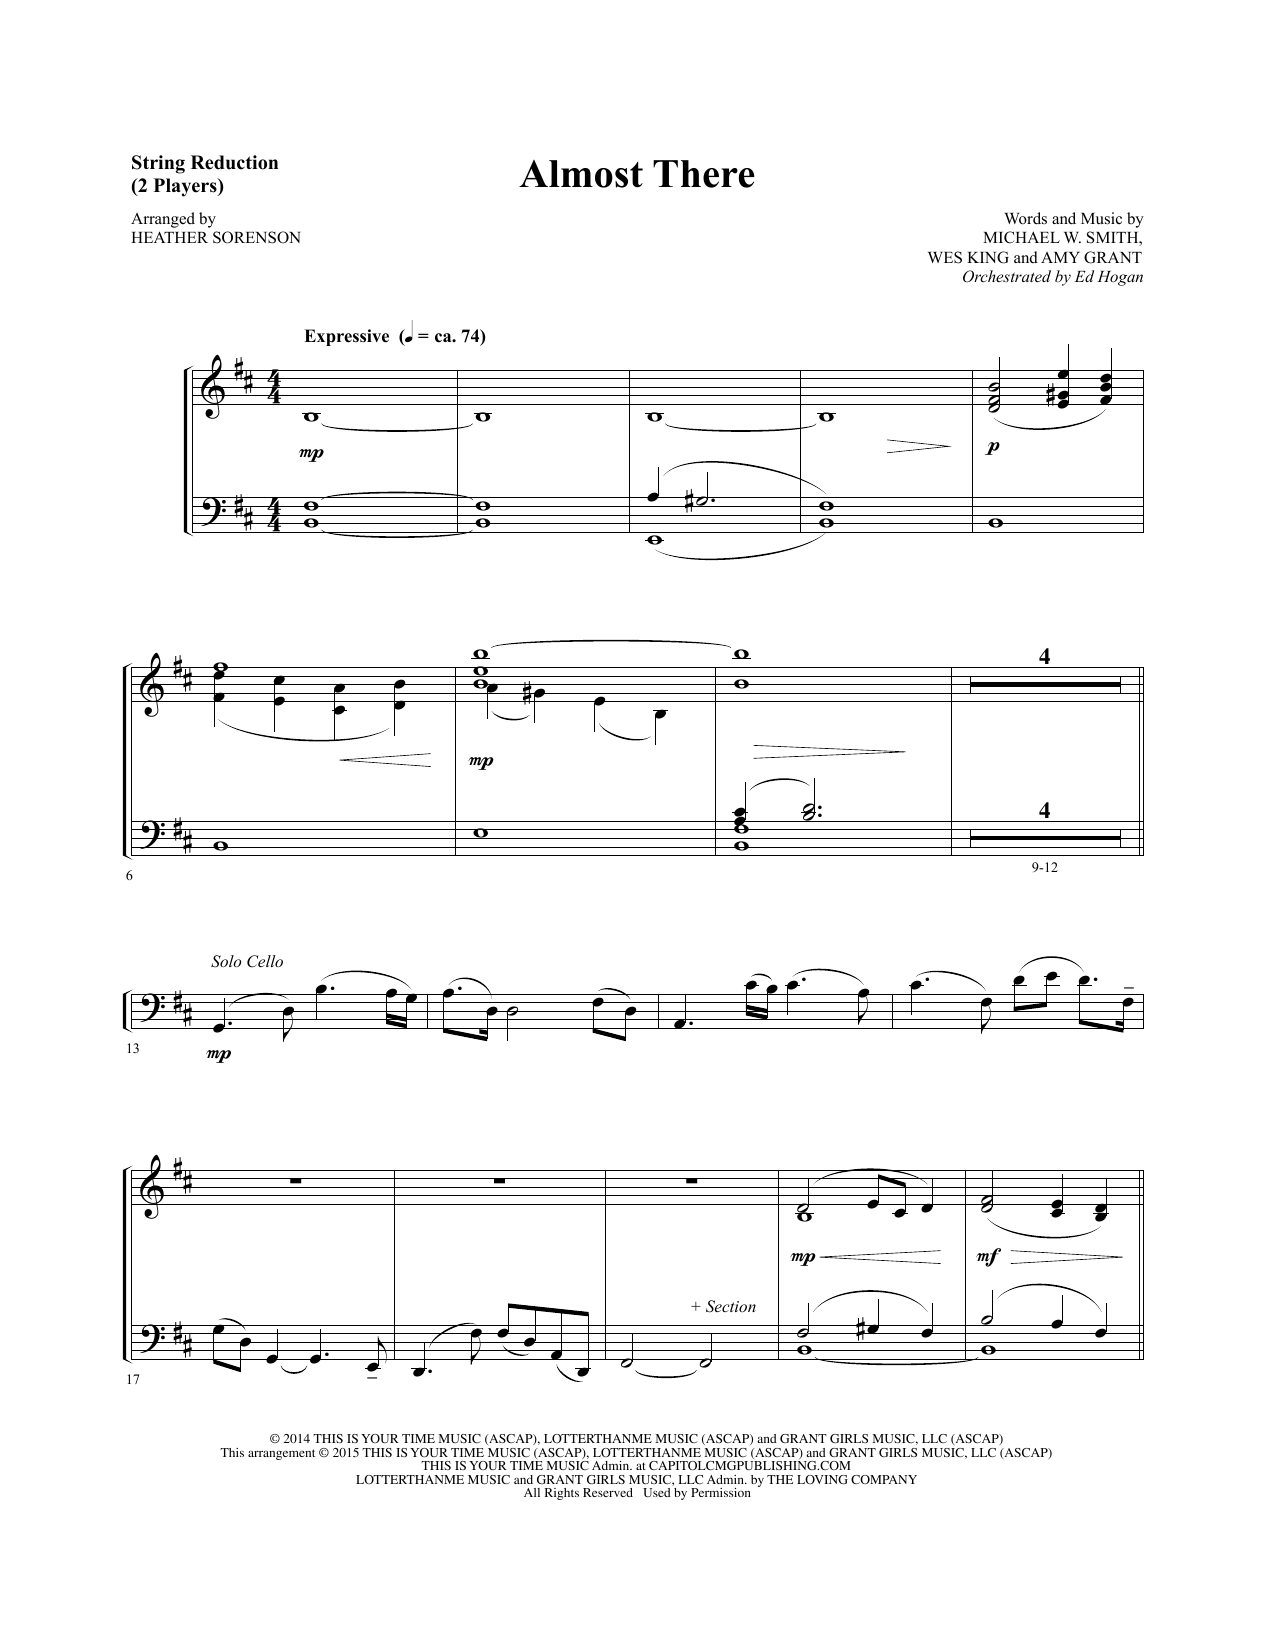 Almost There - Keyboard String Reduction Sheet Music